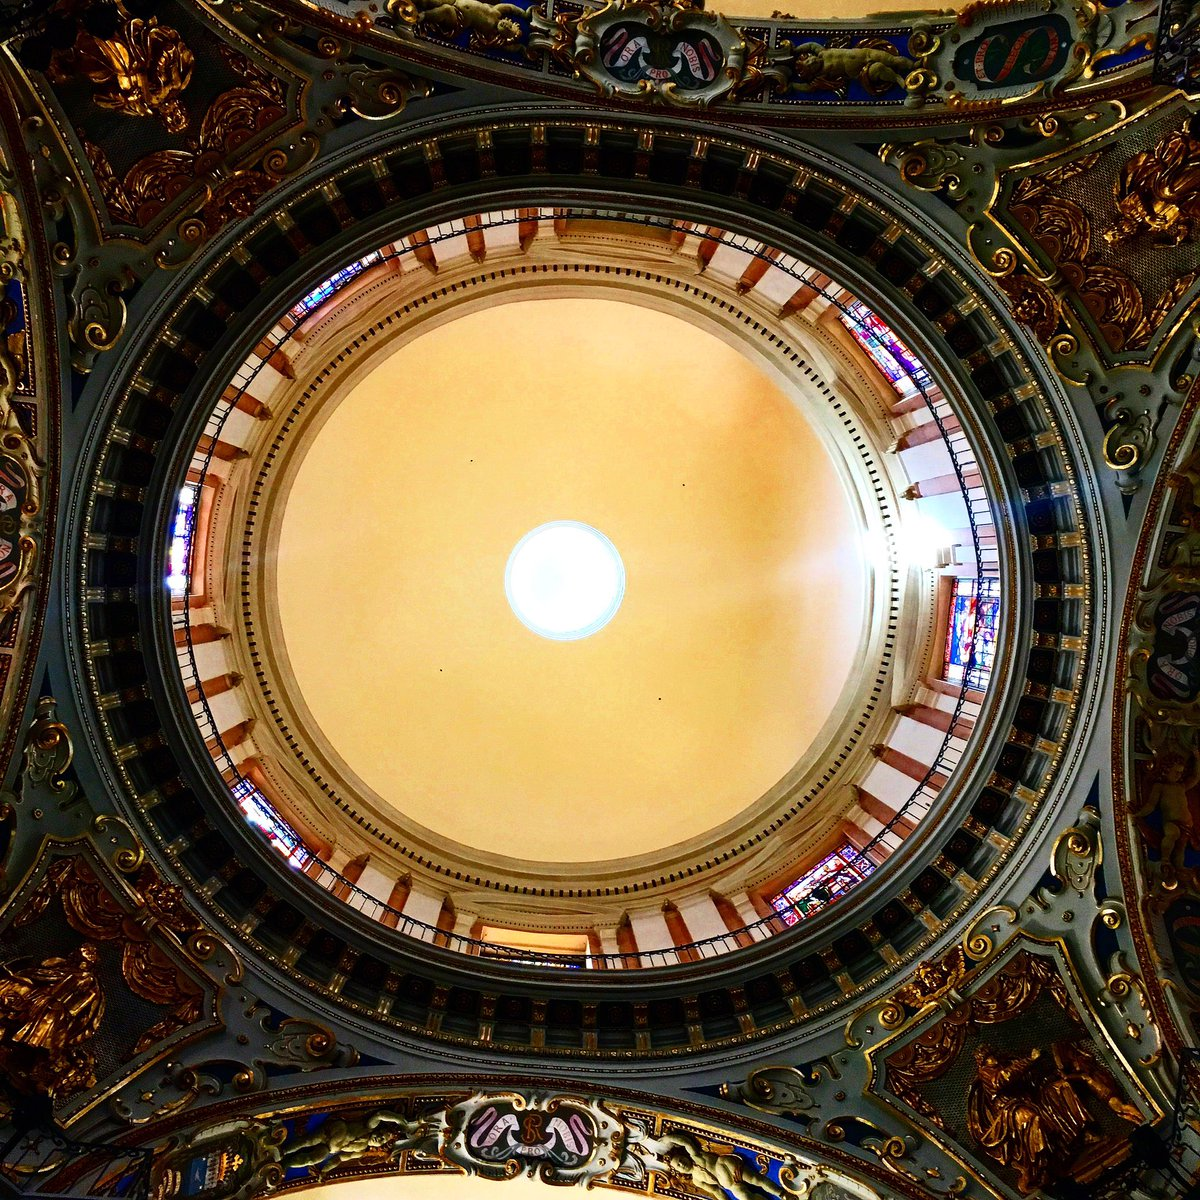 Always look UP #Nice06 #france #travel #Tourism #cotedazur #Cotedazurfrance #church #architecture #love #beautiful #holiday #amazing<br>http://pic.twitter.com/NFTHvlO0Ji